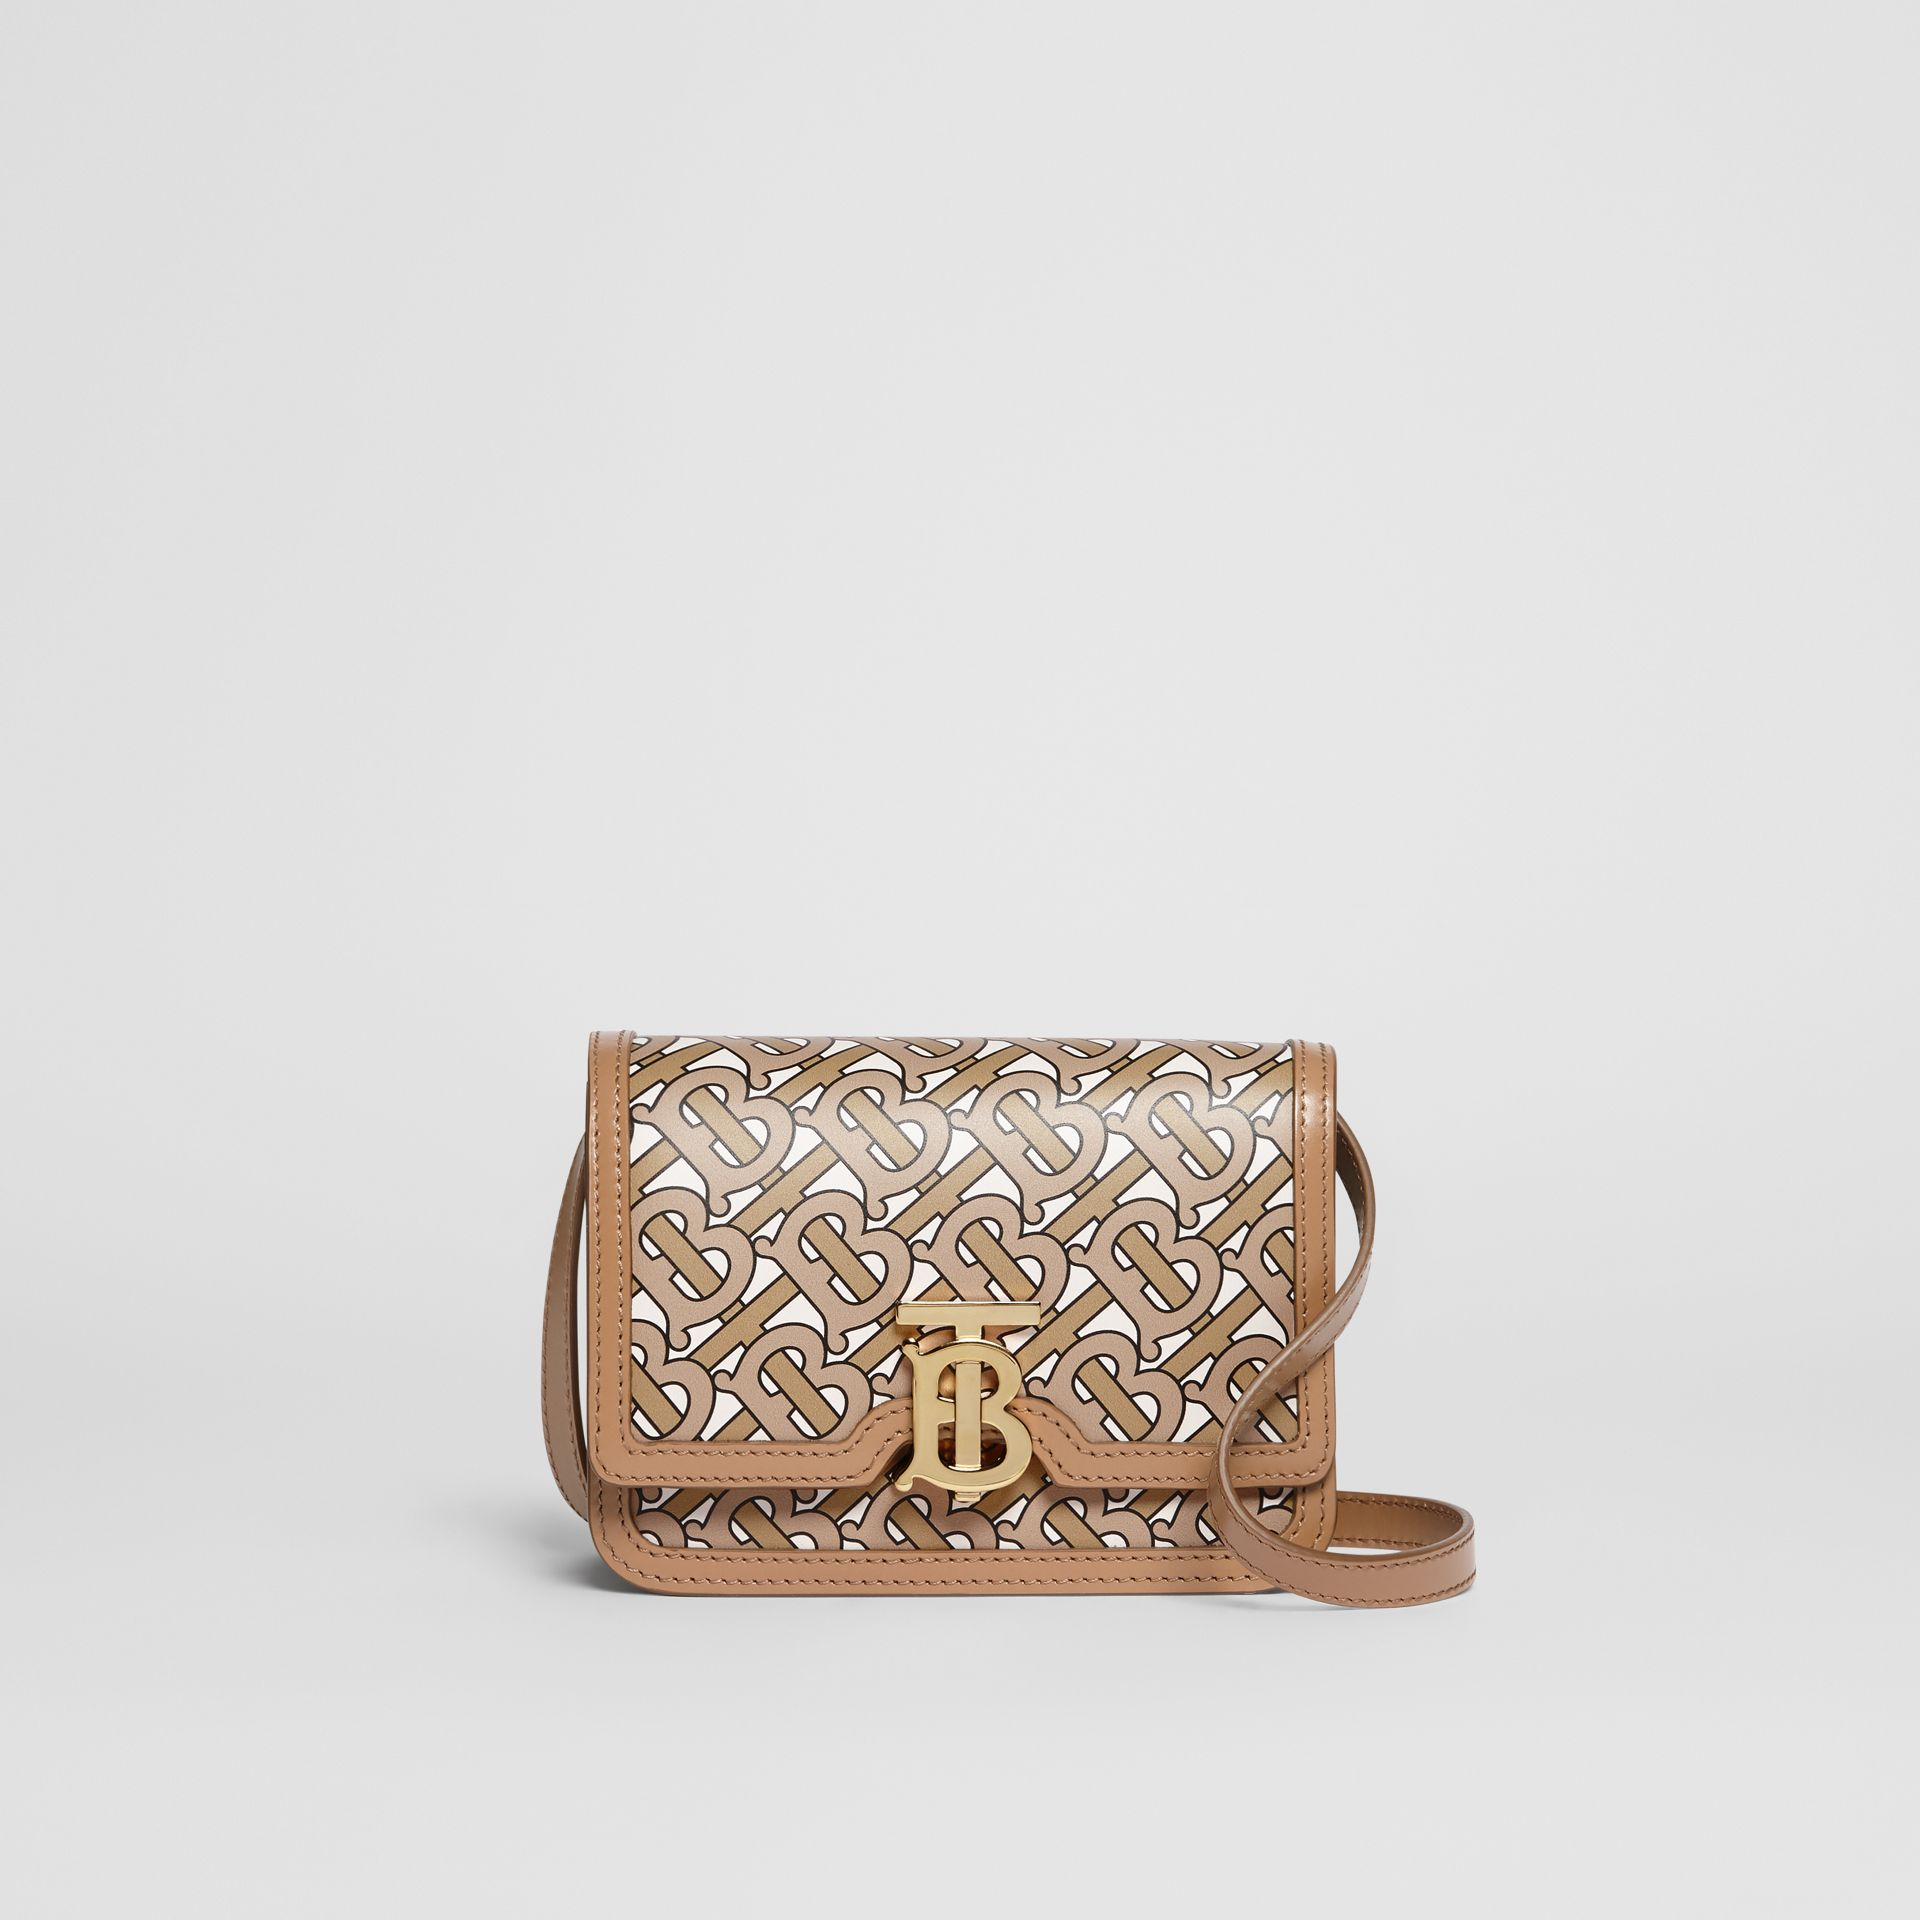 Mini sac TB en cuir Monogram (Beige) - Femme | Burberry - photo de la galerie 0